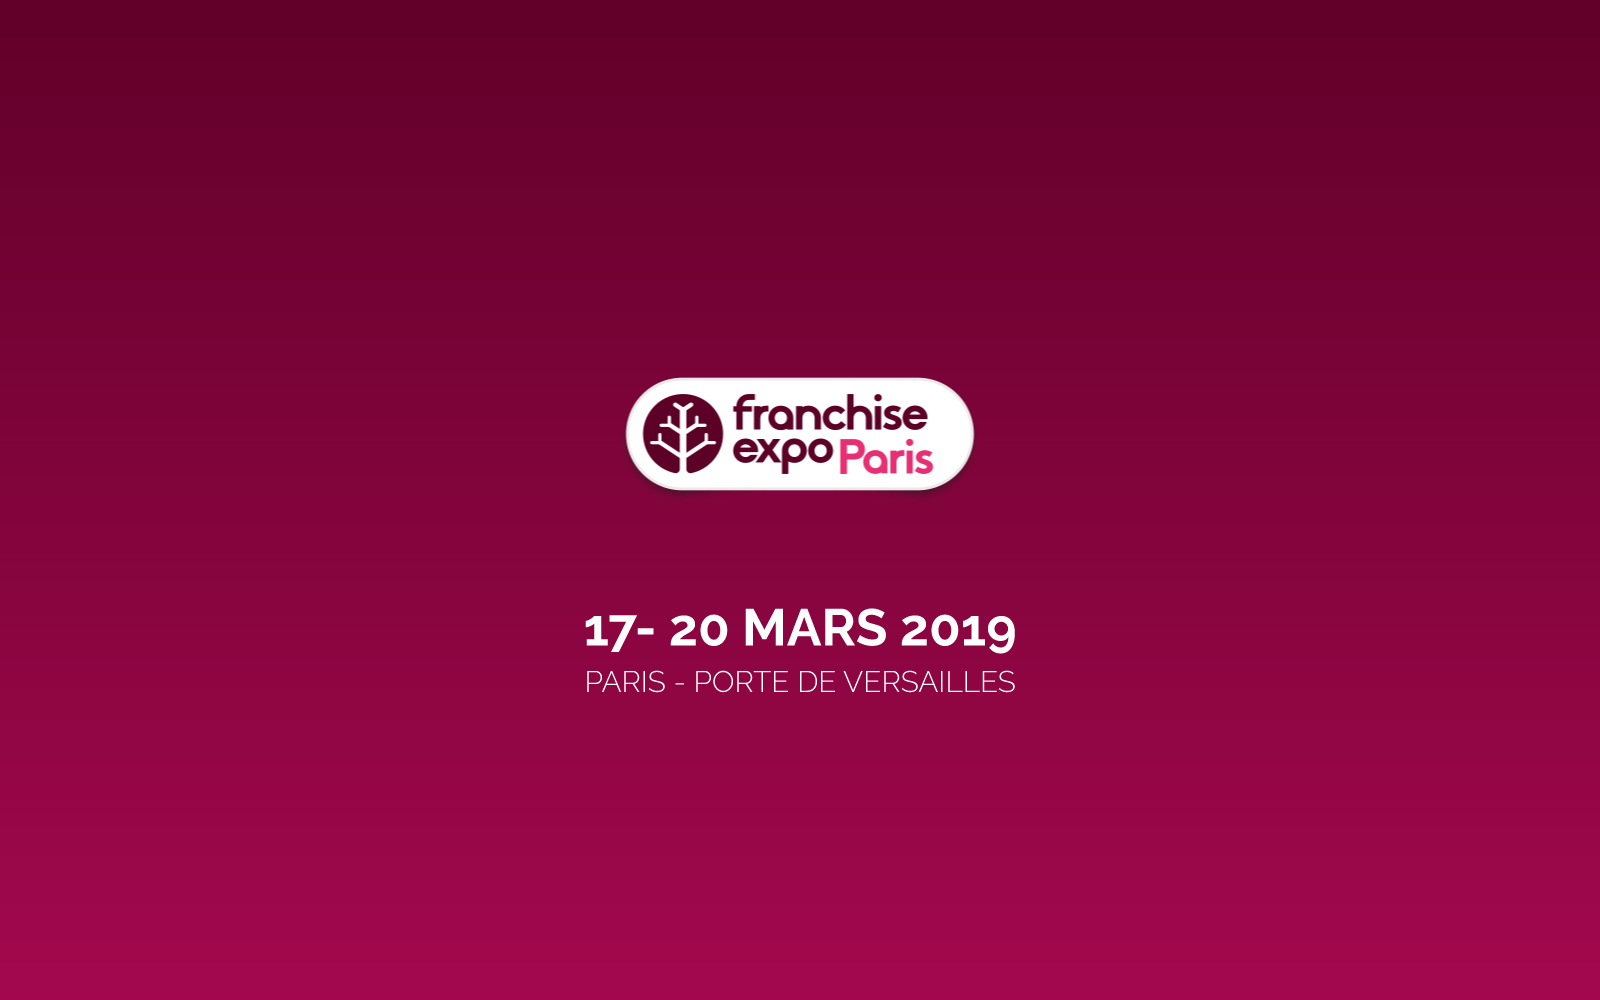 franchise-expo-2019